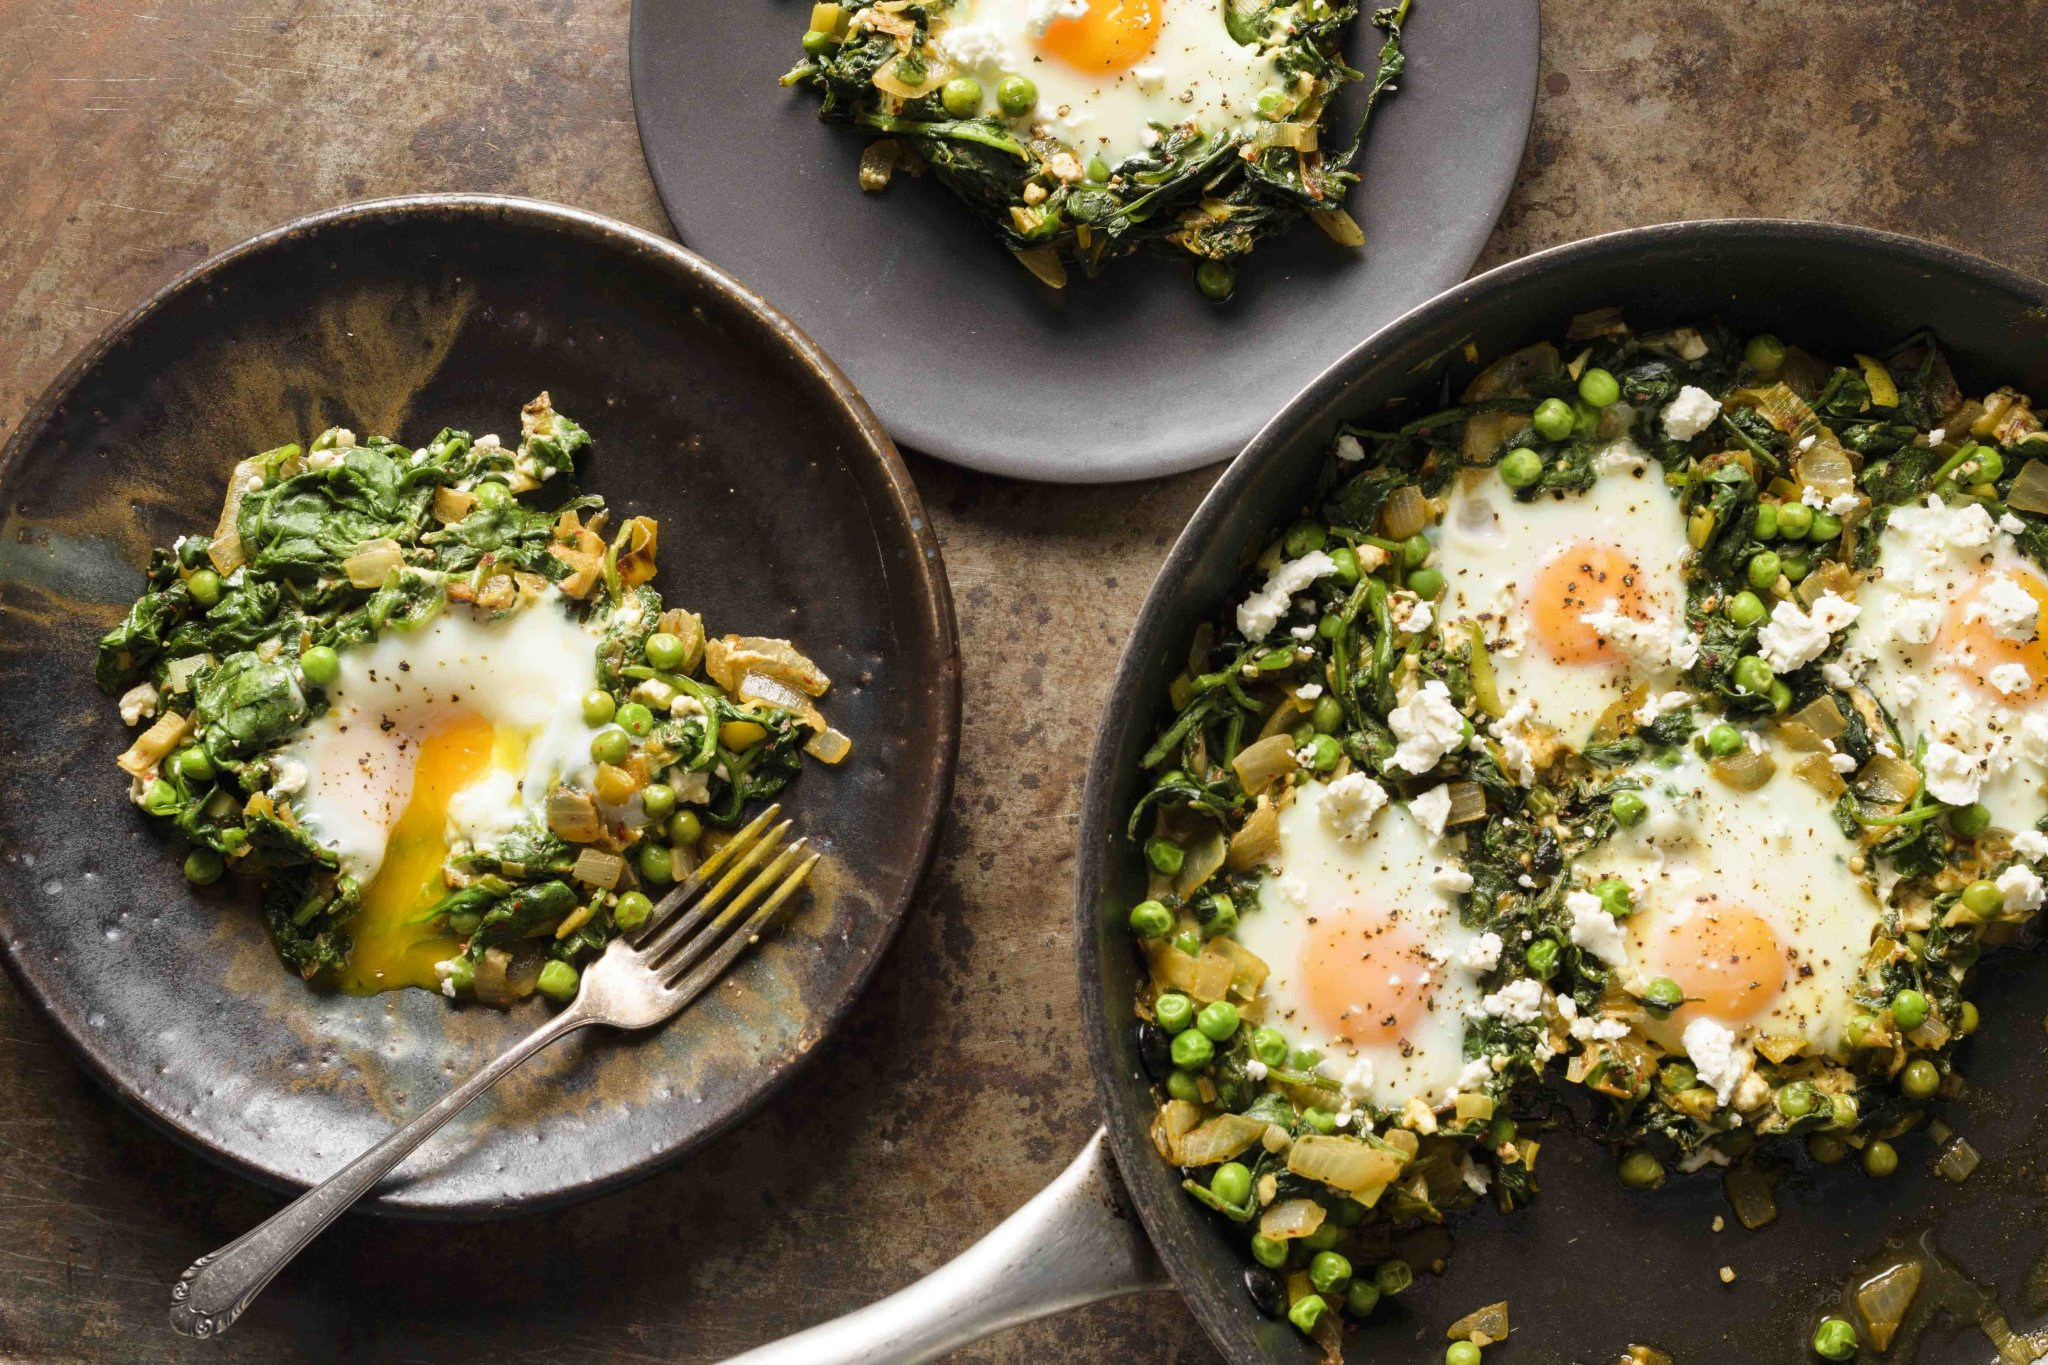 11 Spring Recipes We're So Excited to Make